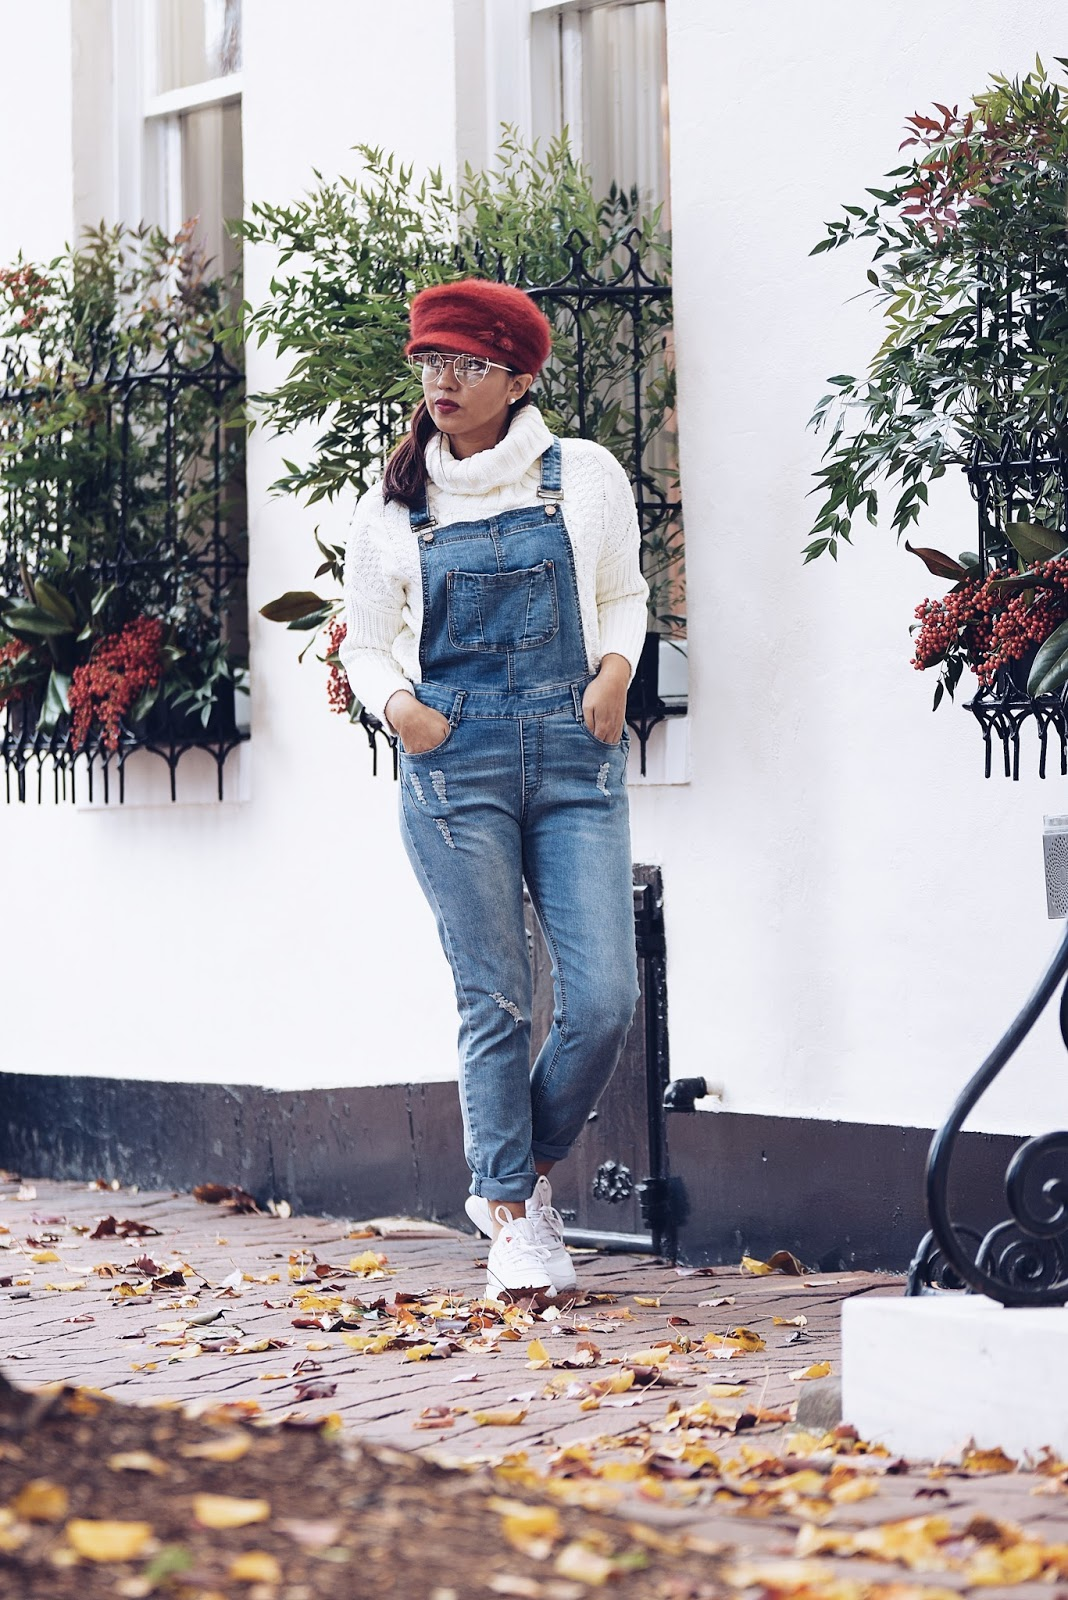 Wearing: Red Cap: TwinkleDeals Overall: SheIn Sweater: SheIn Shoes: Reebok Classic